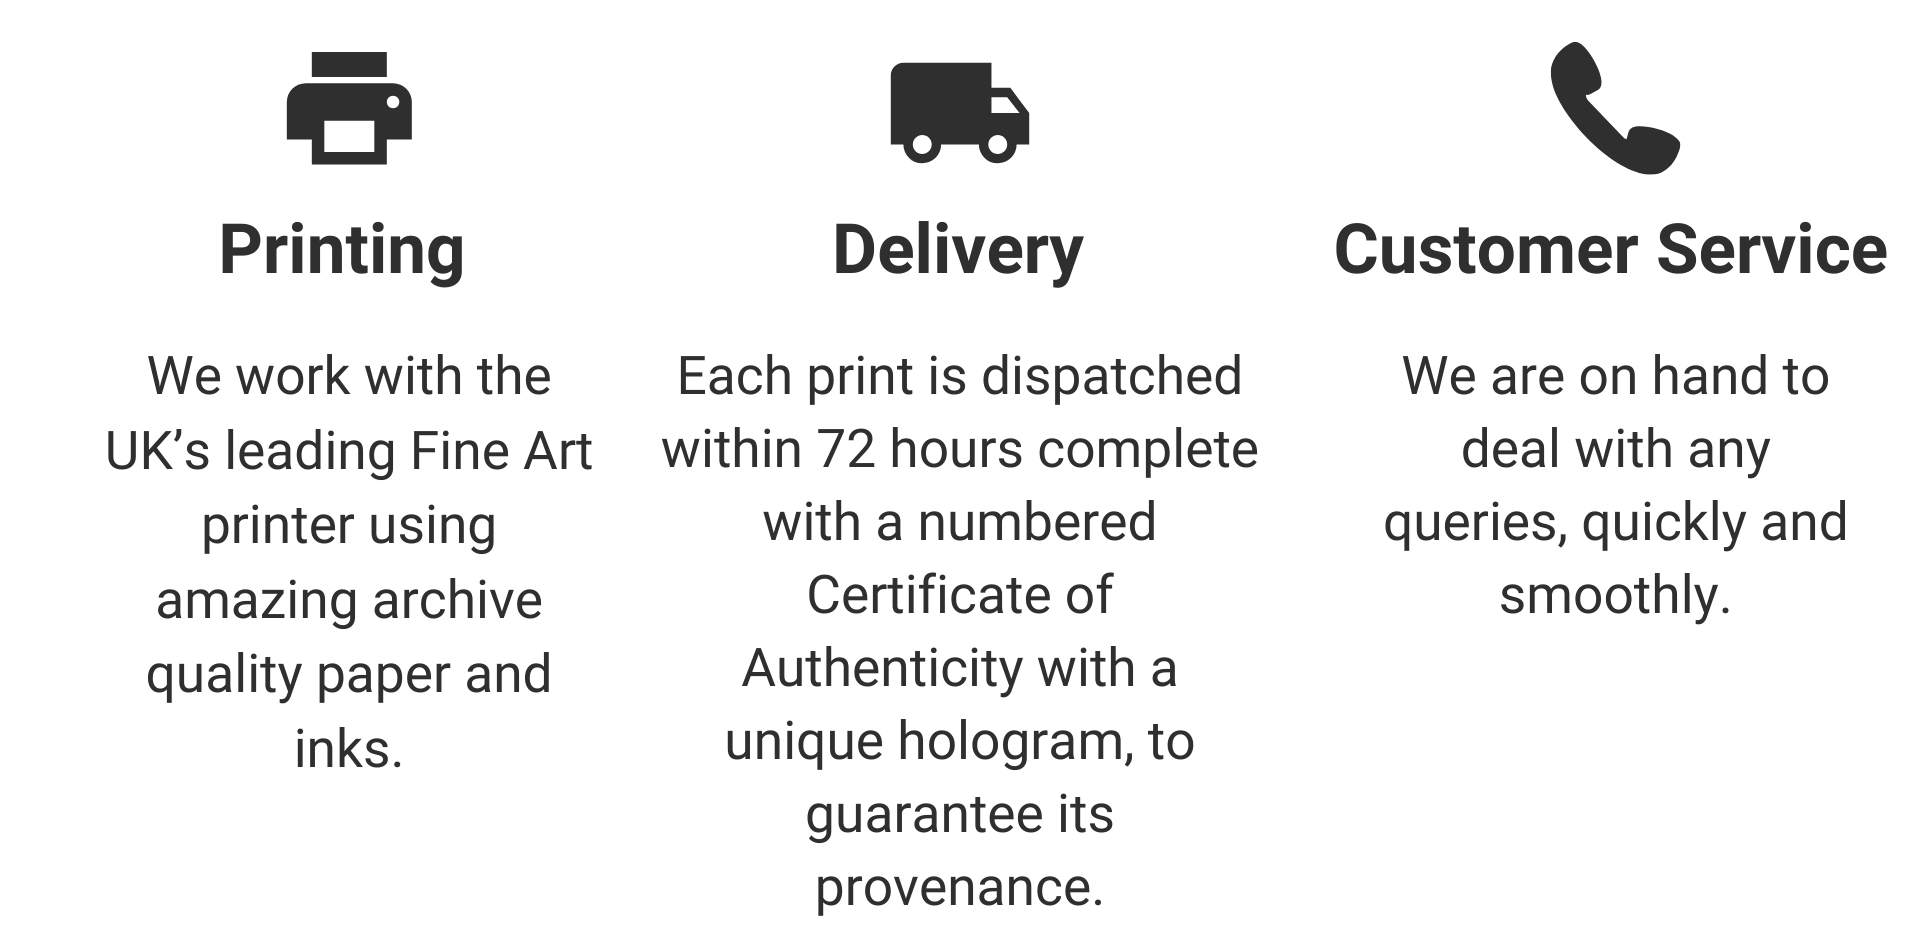 Printing DeliveryCustomer Service  We work with the UK's leading Fine Art printer using amazing archive quality paper and inks. Each print is dispatched within 72 hours complete with a numbered Certificate of Authenticity with a unique hologram, to guarantee its provenance. We are on hand to deal with any queries, quickly and smoothly.